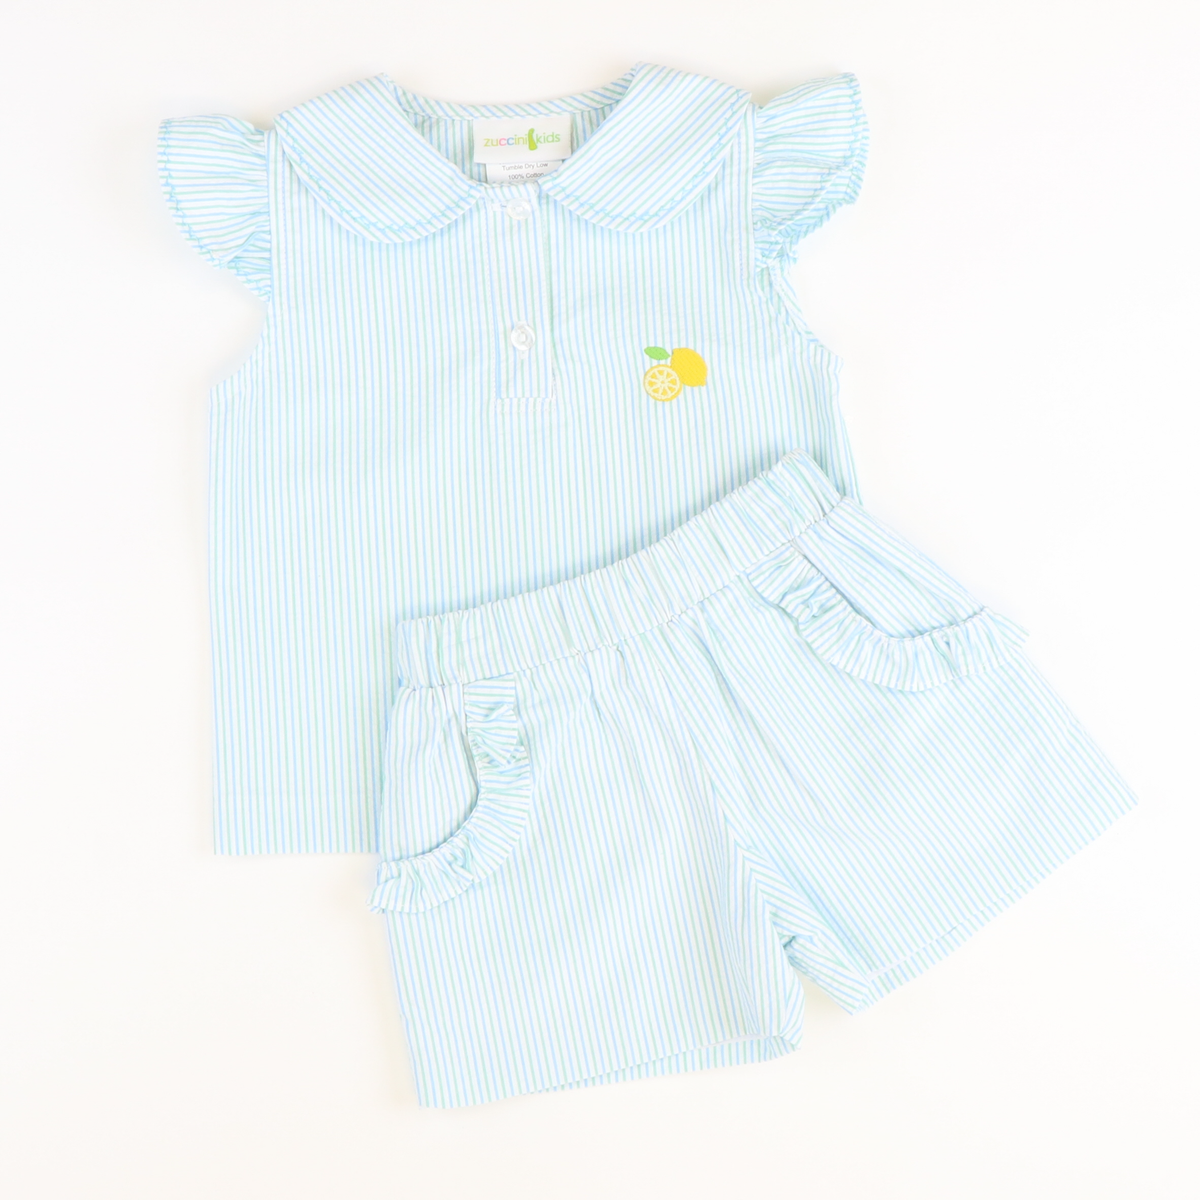 Embroidered Lemon Top & Shorts Set - Blue & Green Stripe Seersucker